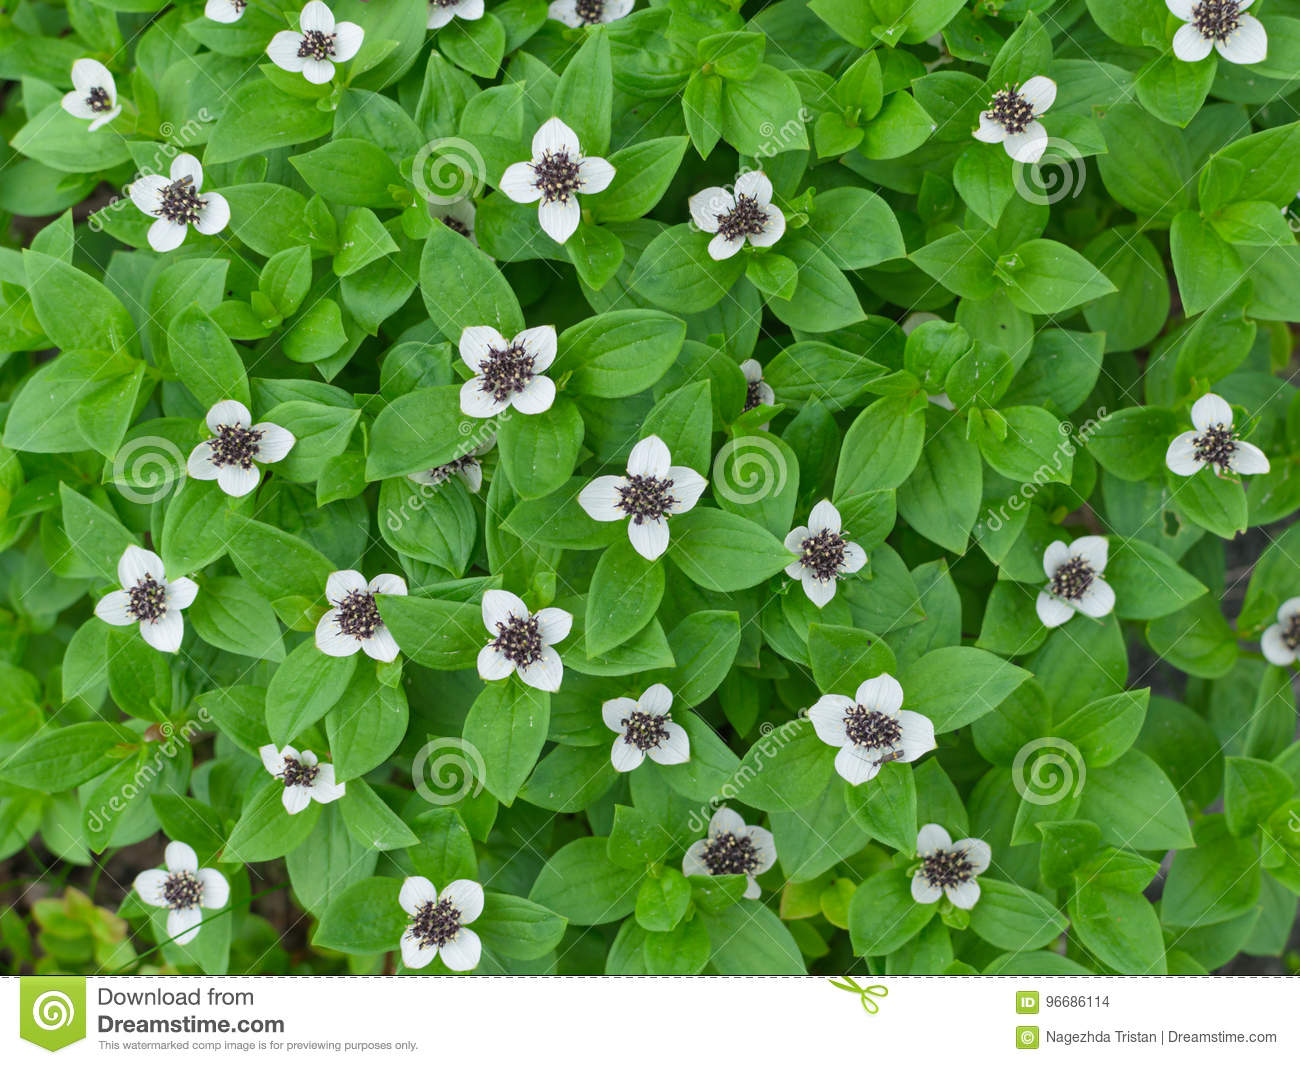 Background of green plants with small white flowers stock photo royalty free stock photo izmirmasajfo Images